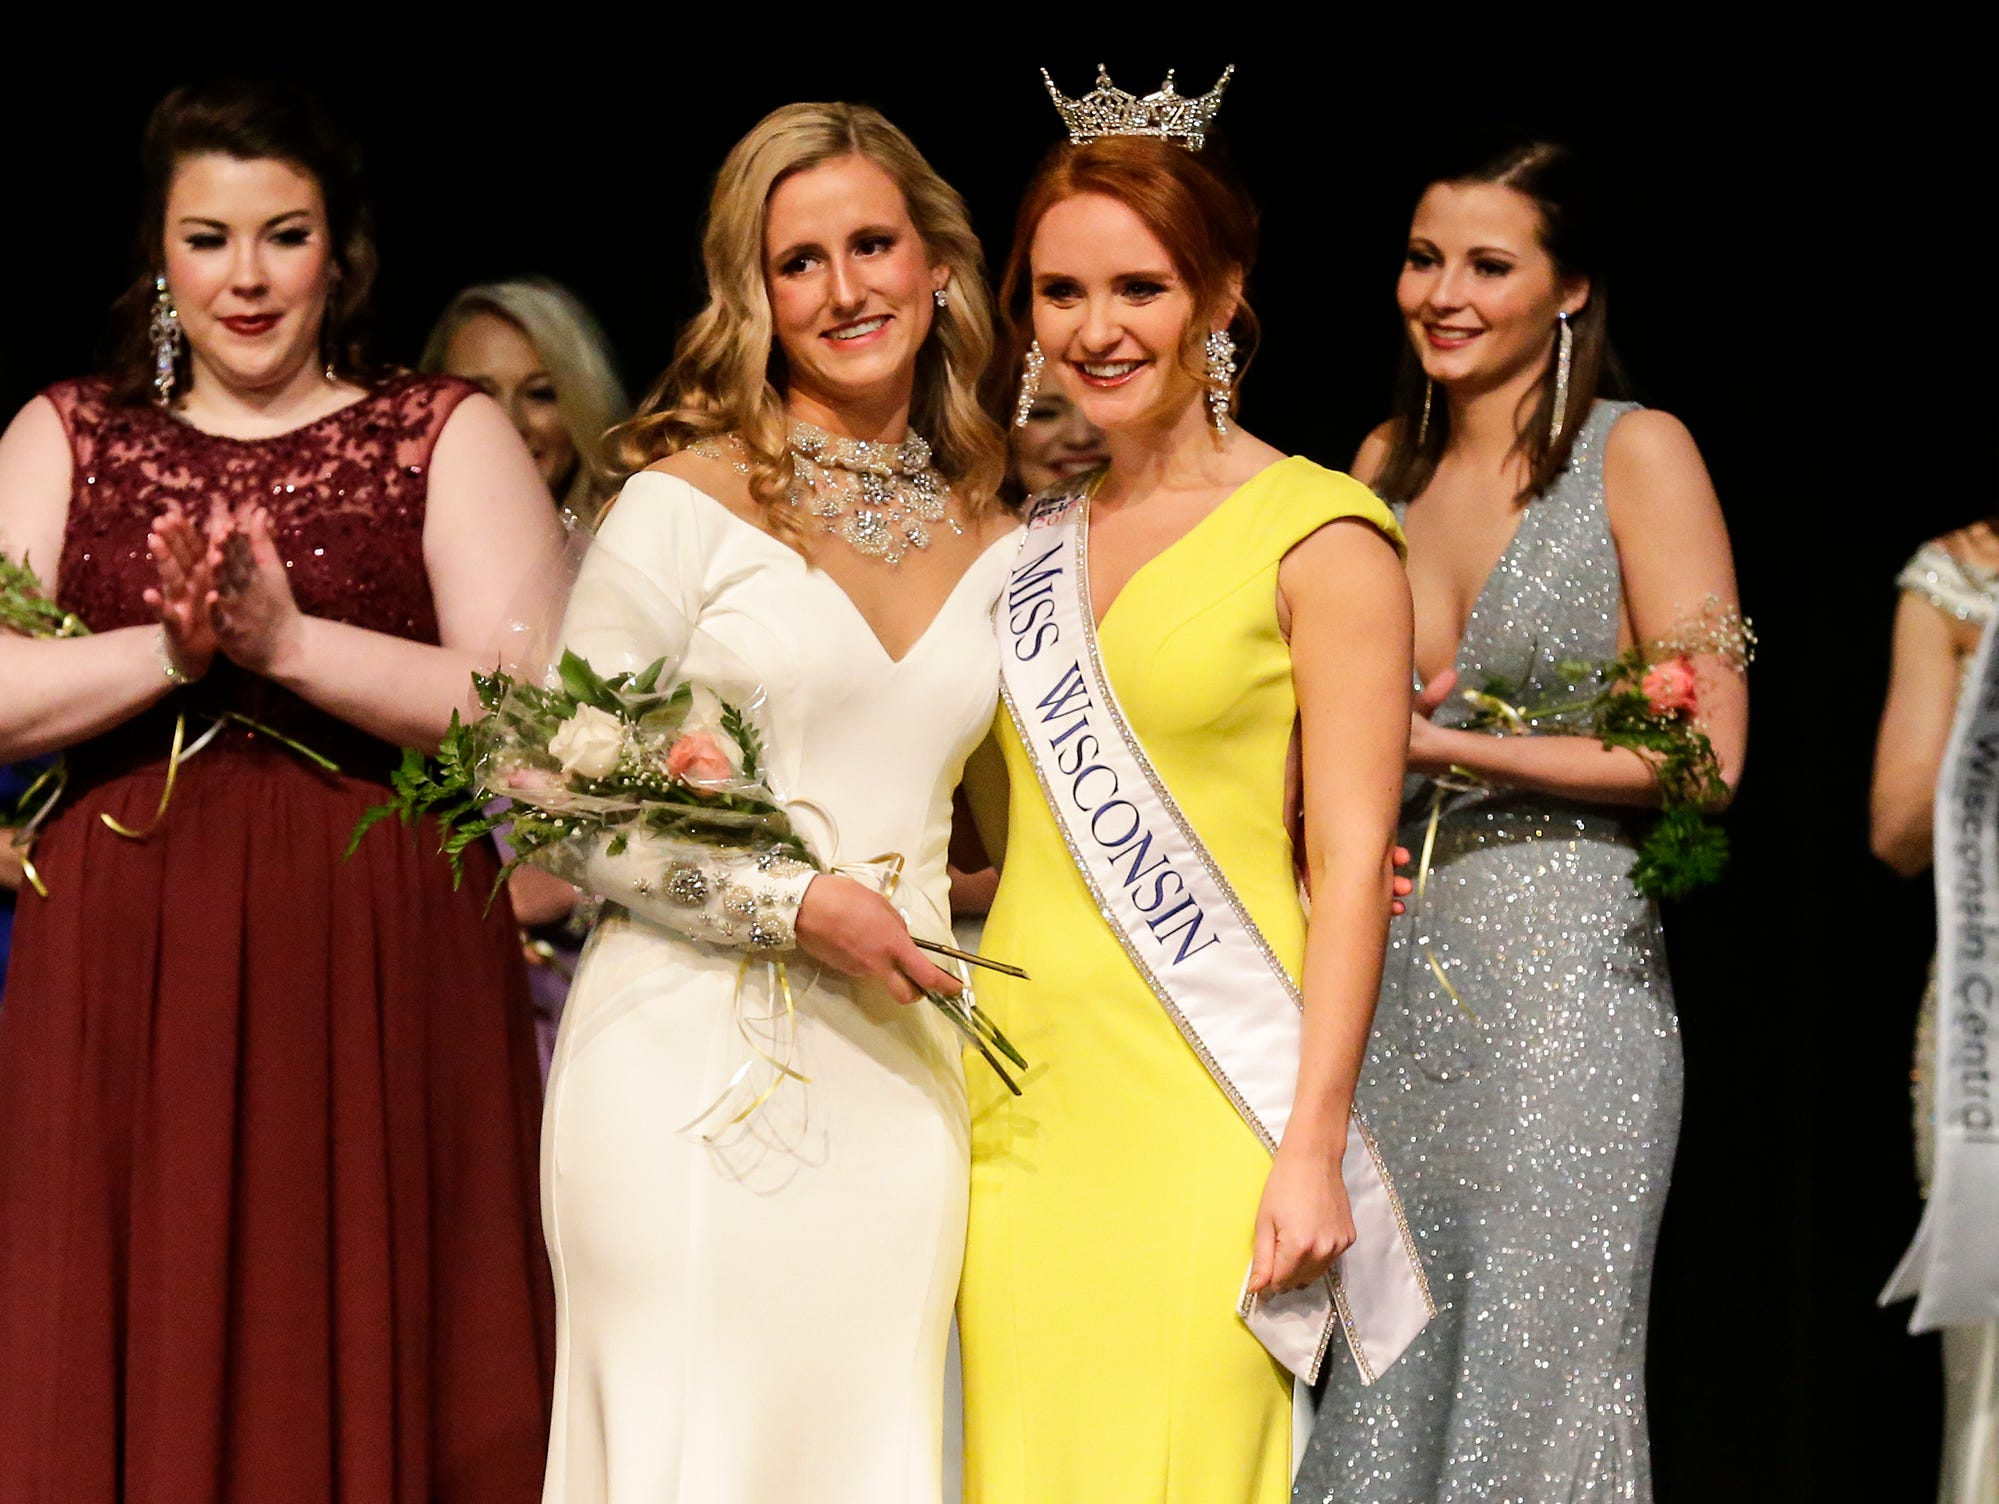 Hannah Ostertag is awarded Miss Wisconsin Central first runner up 2019 and poses with 2018's Miss Wisconsin Tianna Vanderhei during the Miss Fond du Lac, Miss Wisconsin Central and Miss Fond du Lac's Outstanding Teen 2019 scholarship competitions Saturday, March 9, 2019 at the Goodrich Little Theater in Fond du Lac, Wis. Doug Raflik/USA TODAY NETWORK-Wisconsin